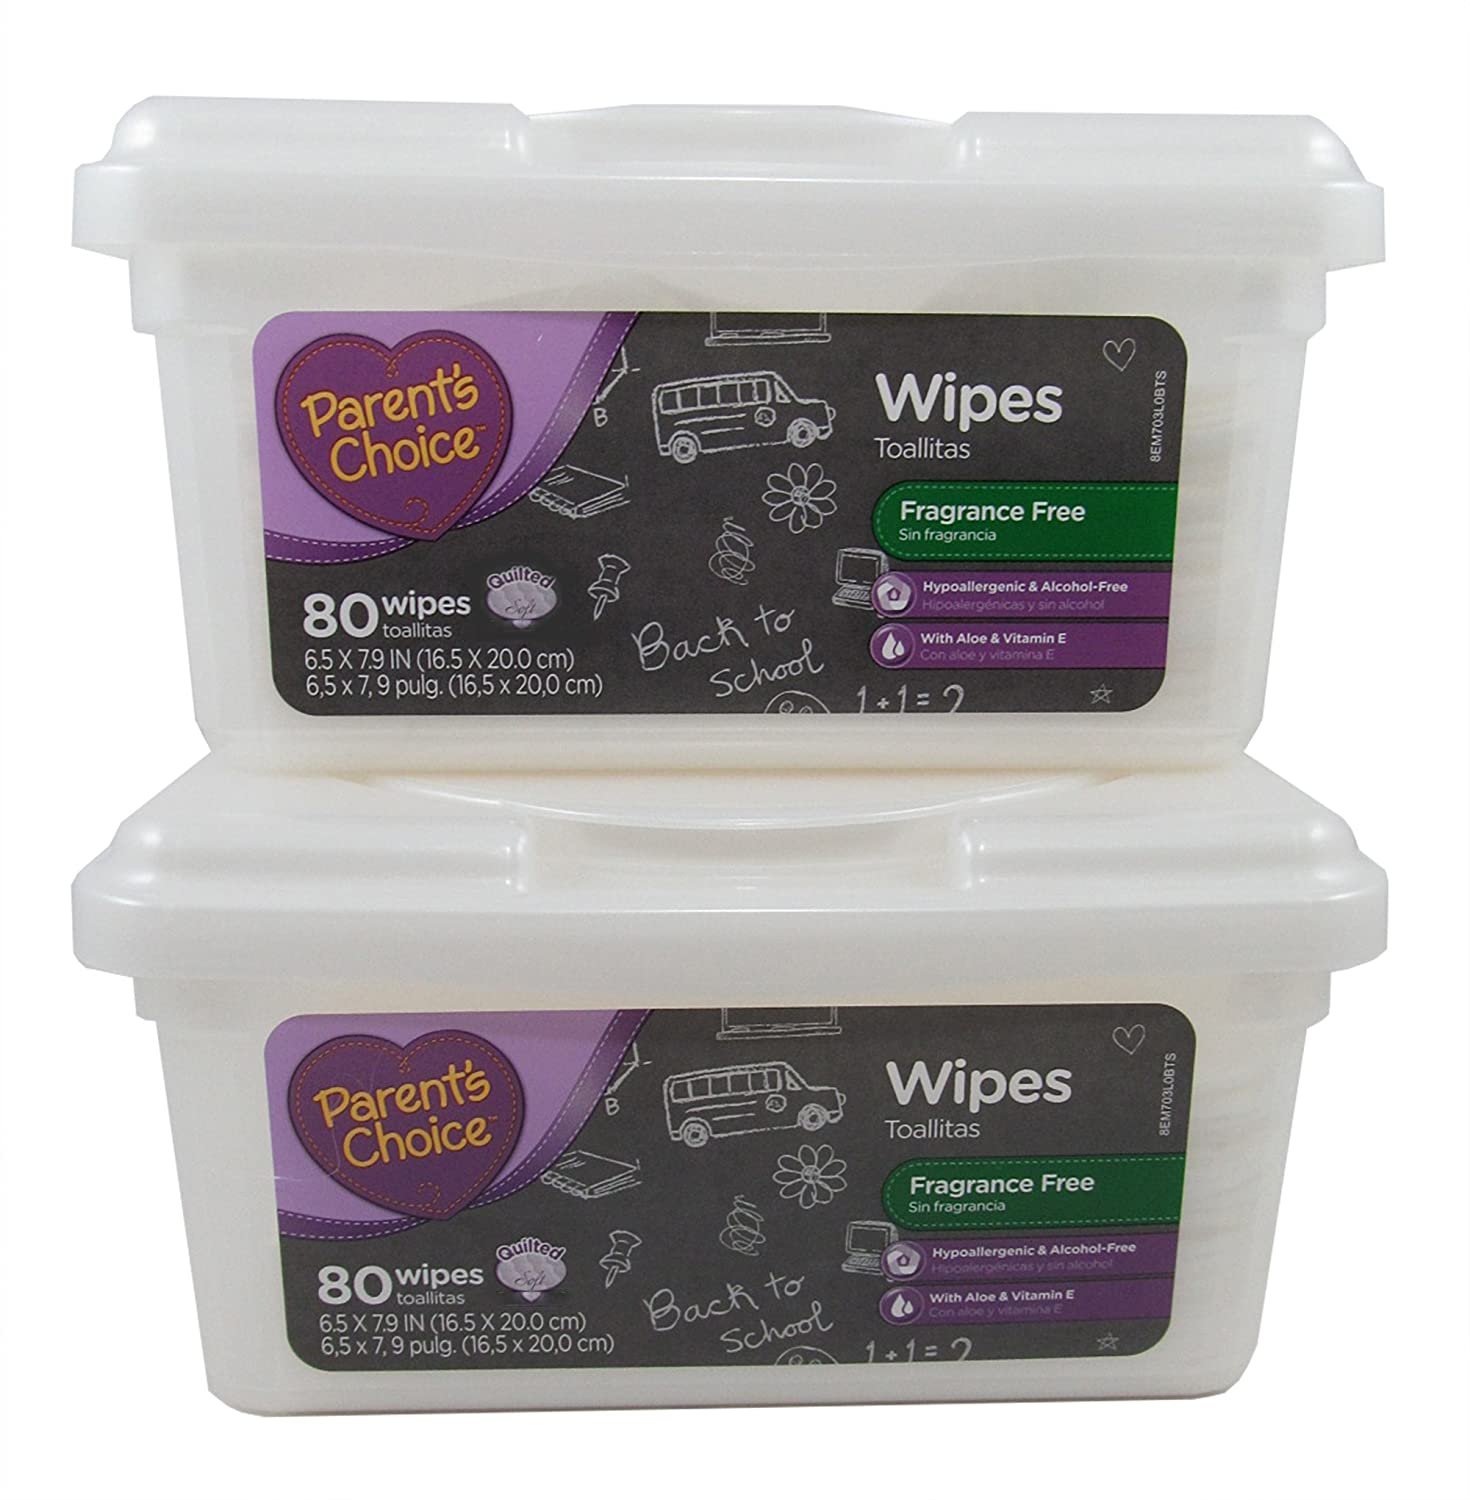 Amazon.com : Parents Choice ~ Baby and Toddler Wipes ~ Fragrance Free & Hypoalergenic ~ 2 Boxes of 80 Wipes ~ 160 Wipes Total : Baby